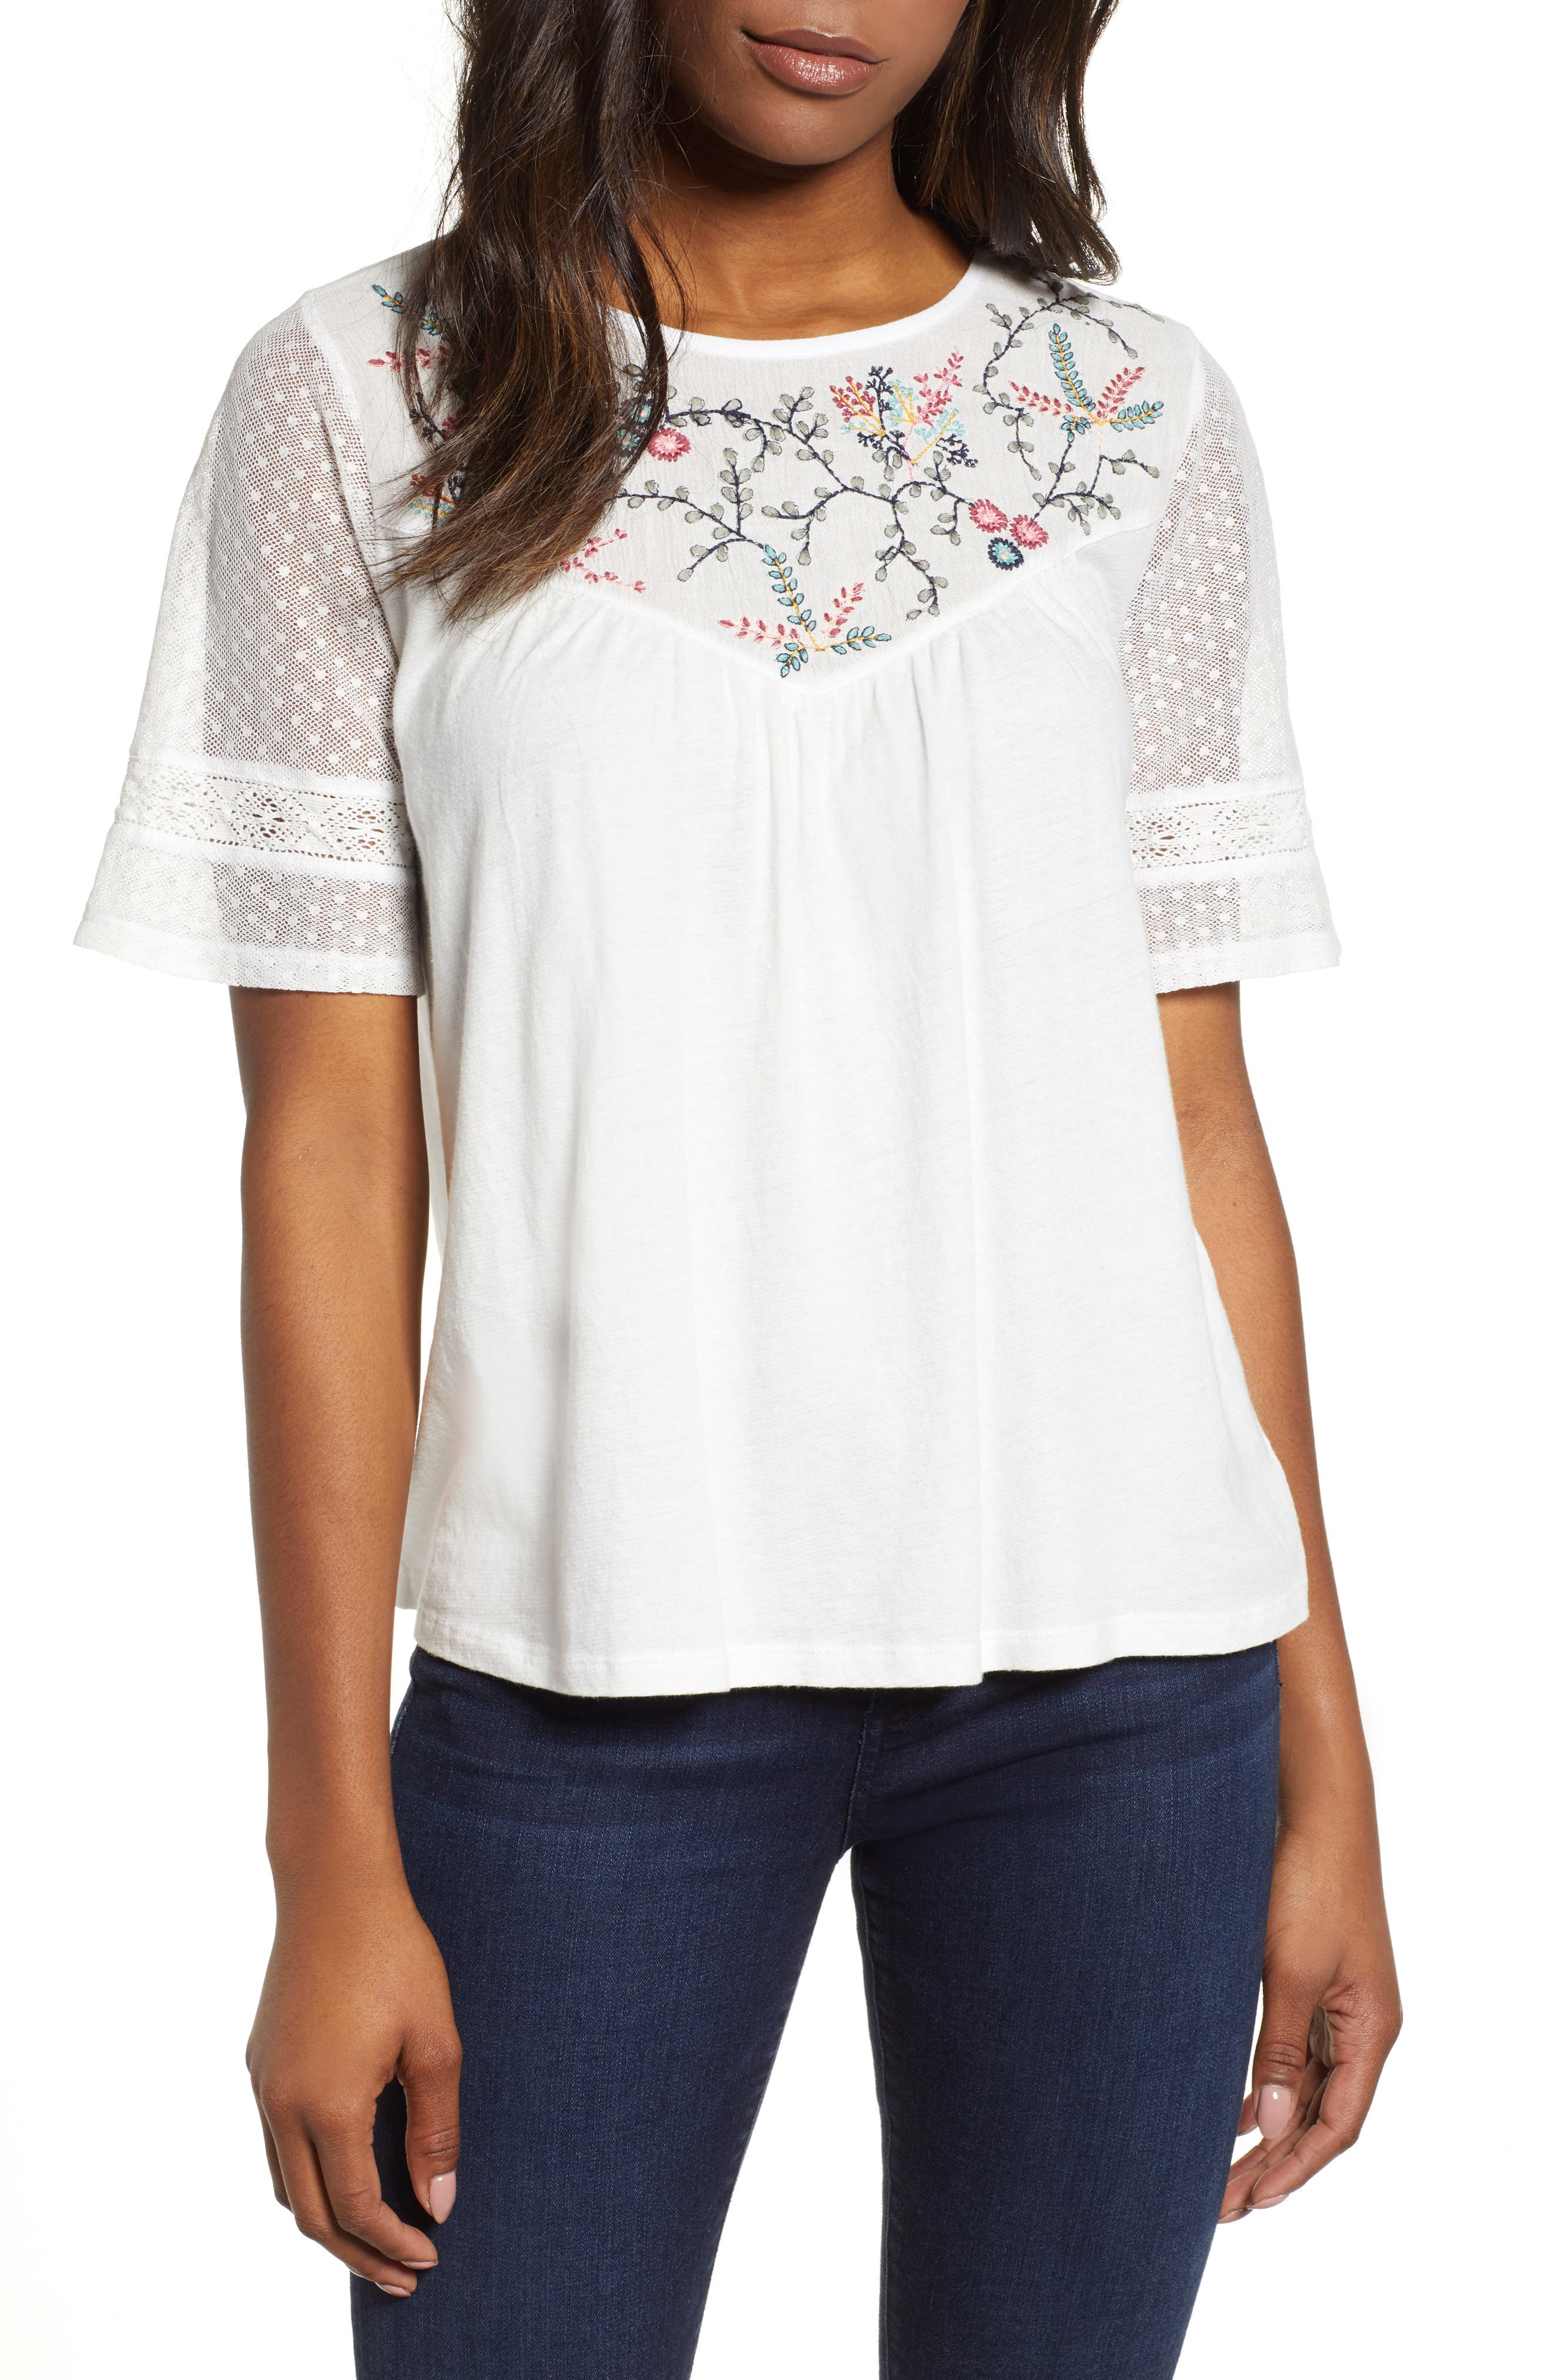 LUCKY BRAND,                             Embroidered Yoke Peasant Top,                             Main thumbnail 1, color,                             LUCKY WHITE